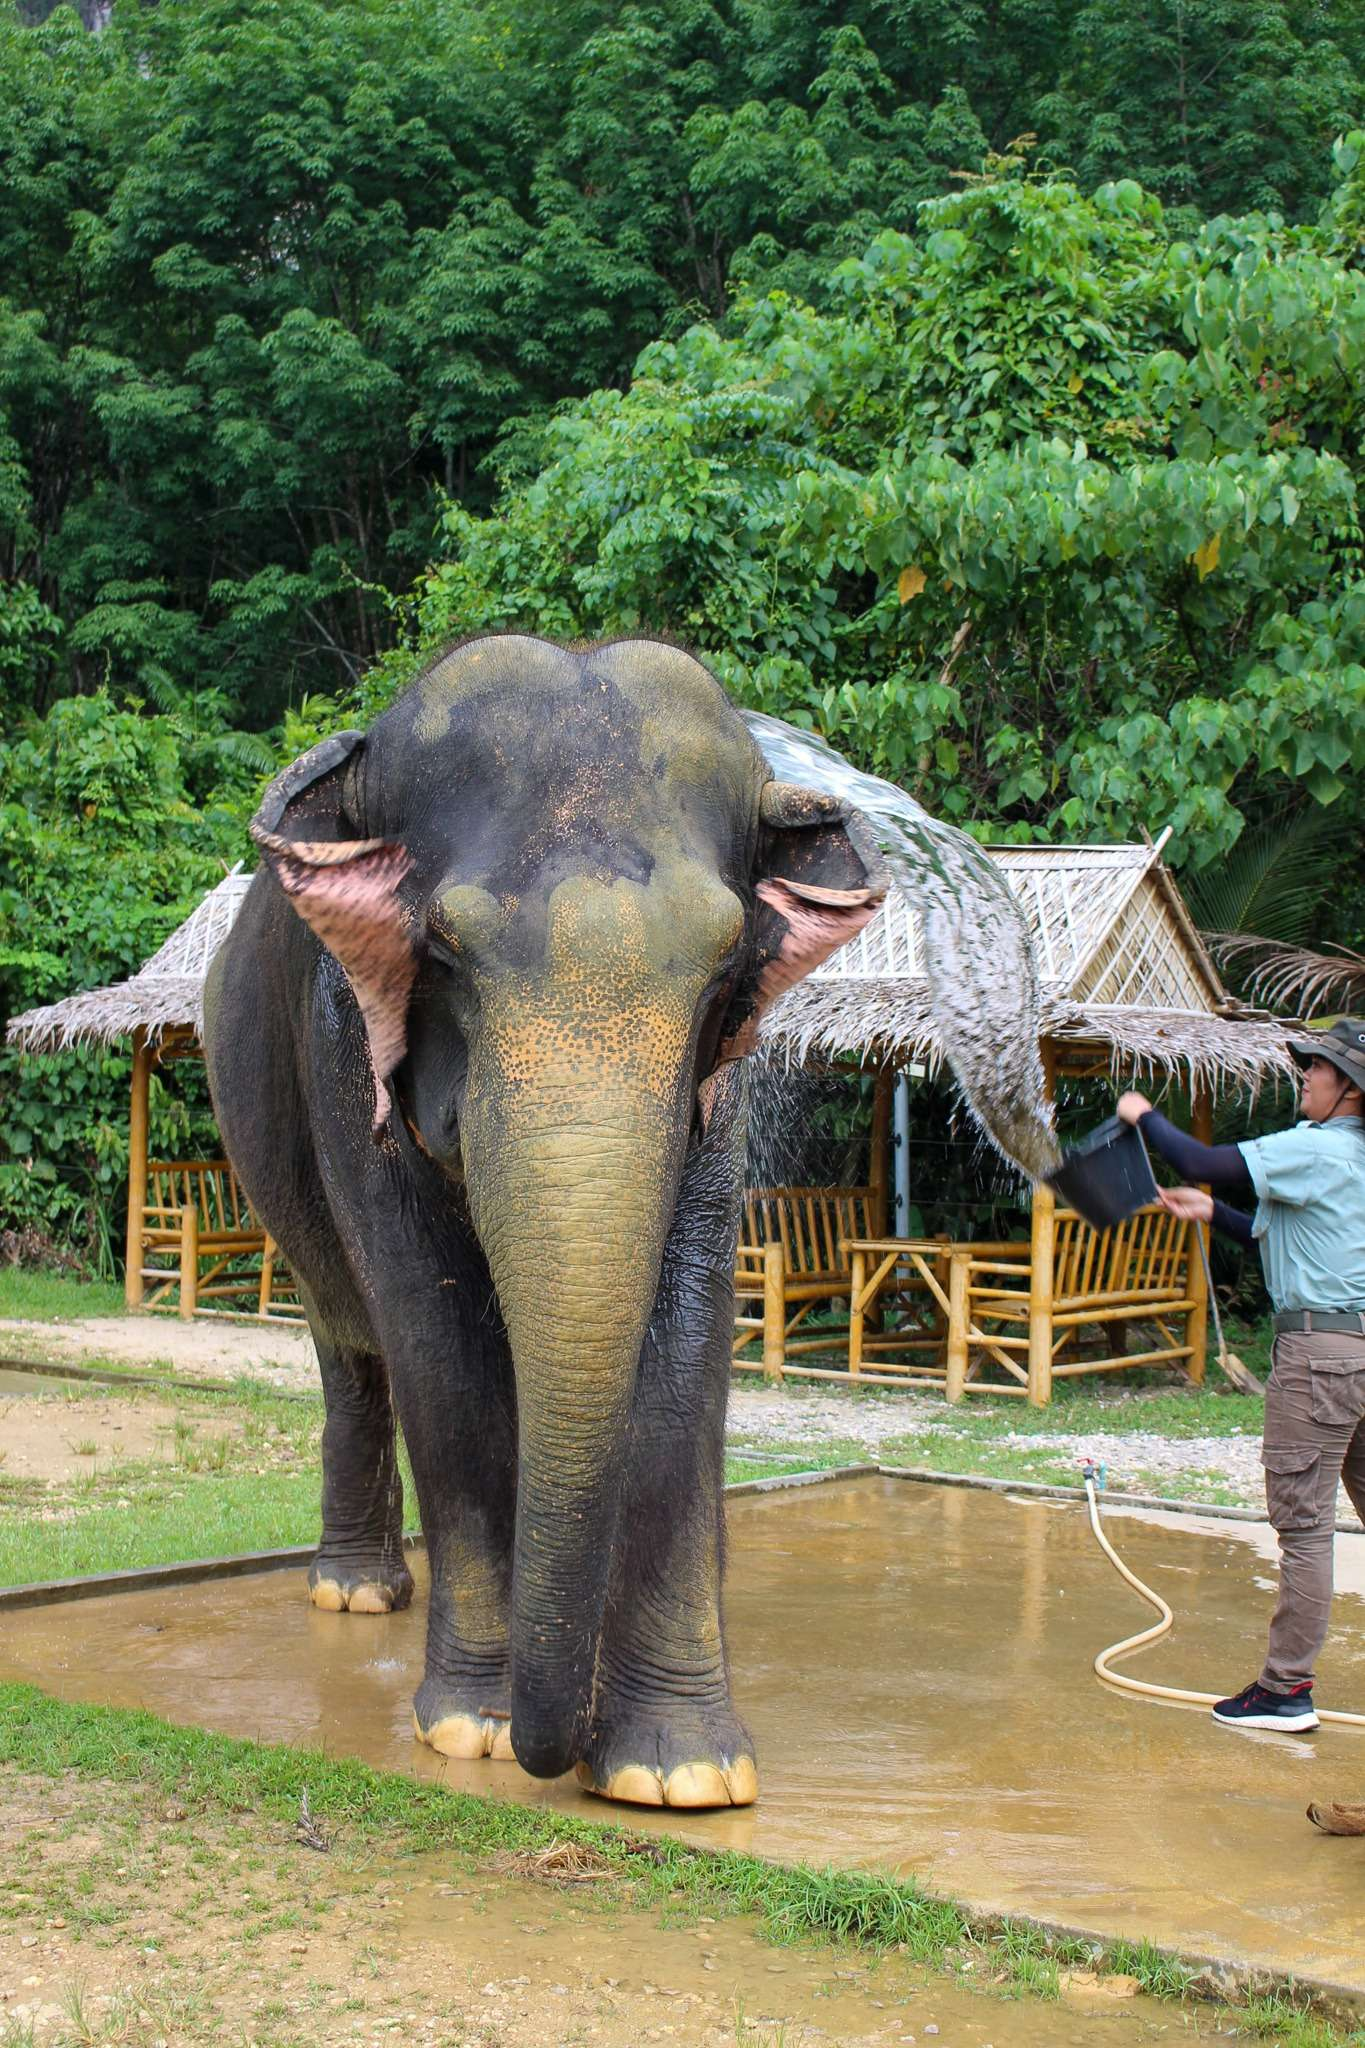 Guide at Elephant Hills Thailand throws a bucket of water over an elephant